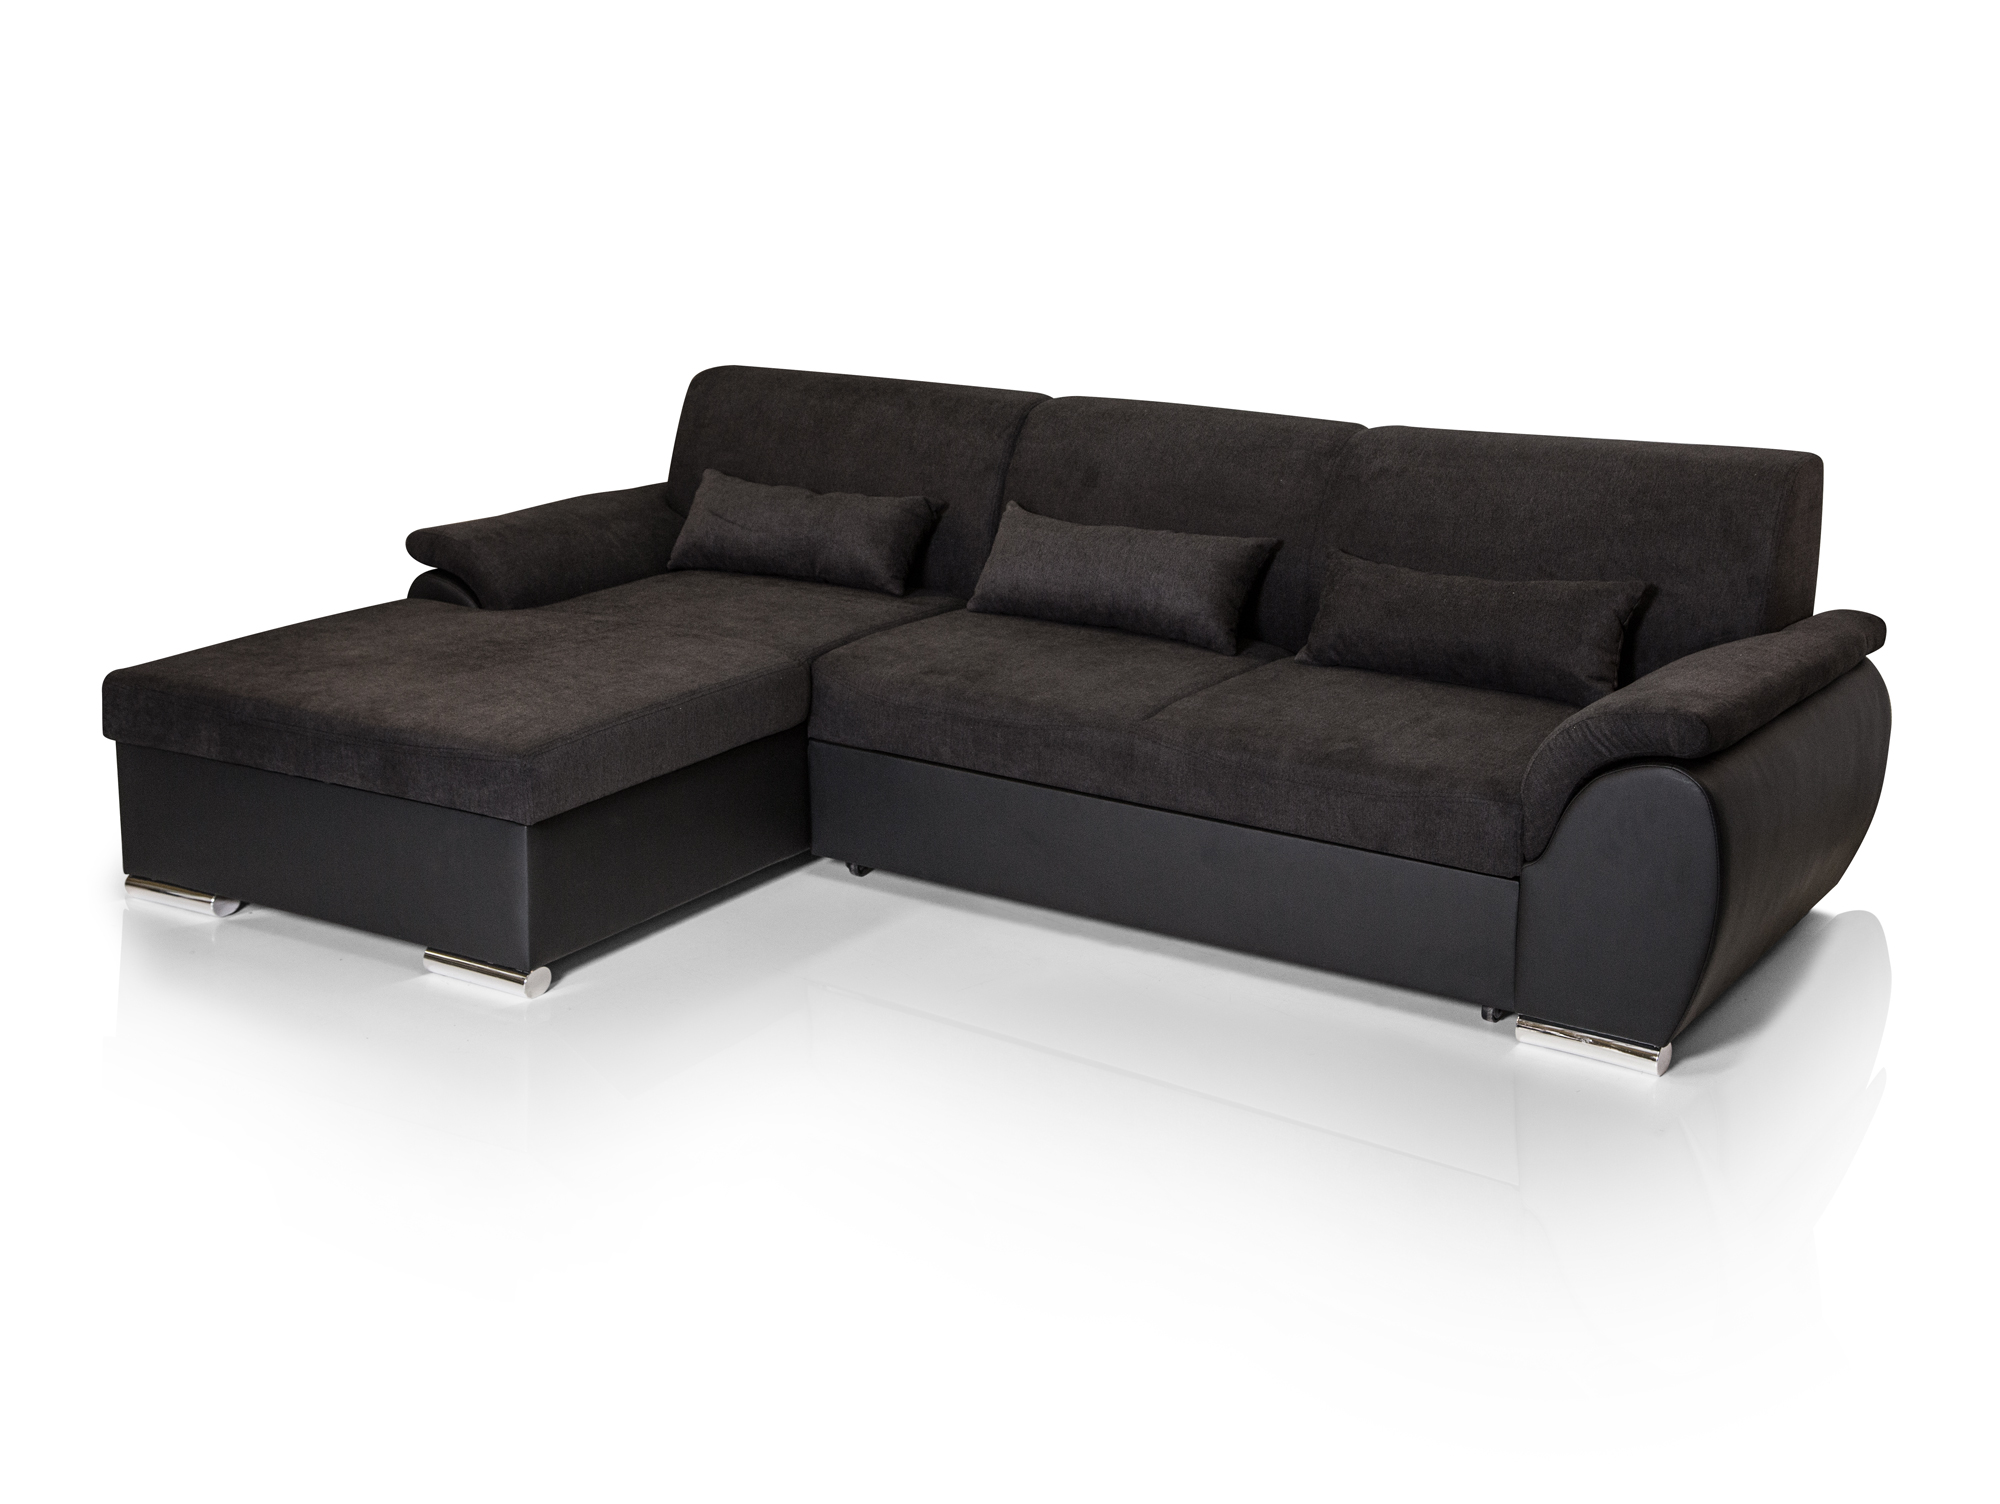 salzburg ecksofa mit bettfunktion links. Black Bedroom Furniture Sets. Home Design Ideas